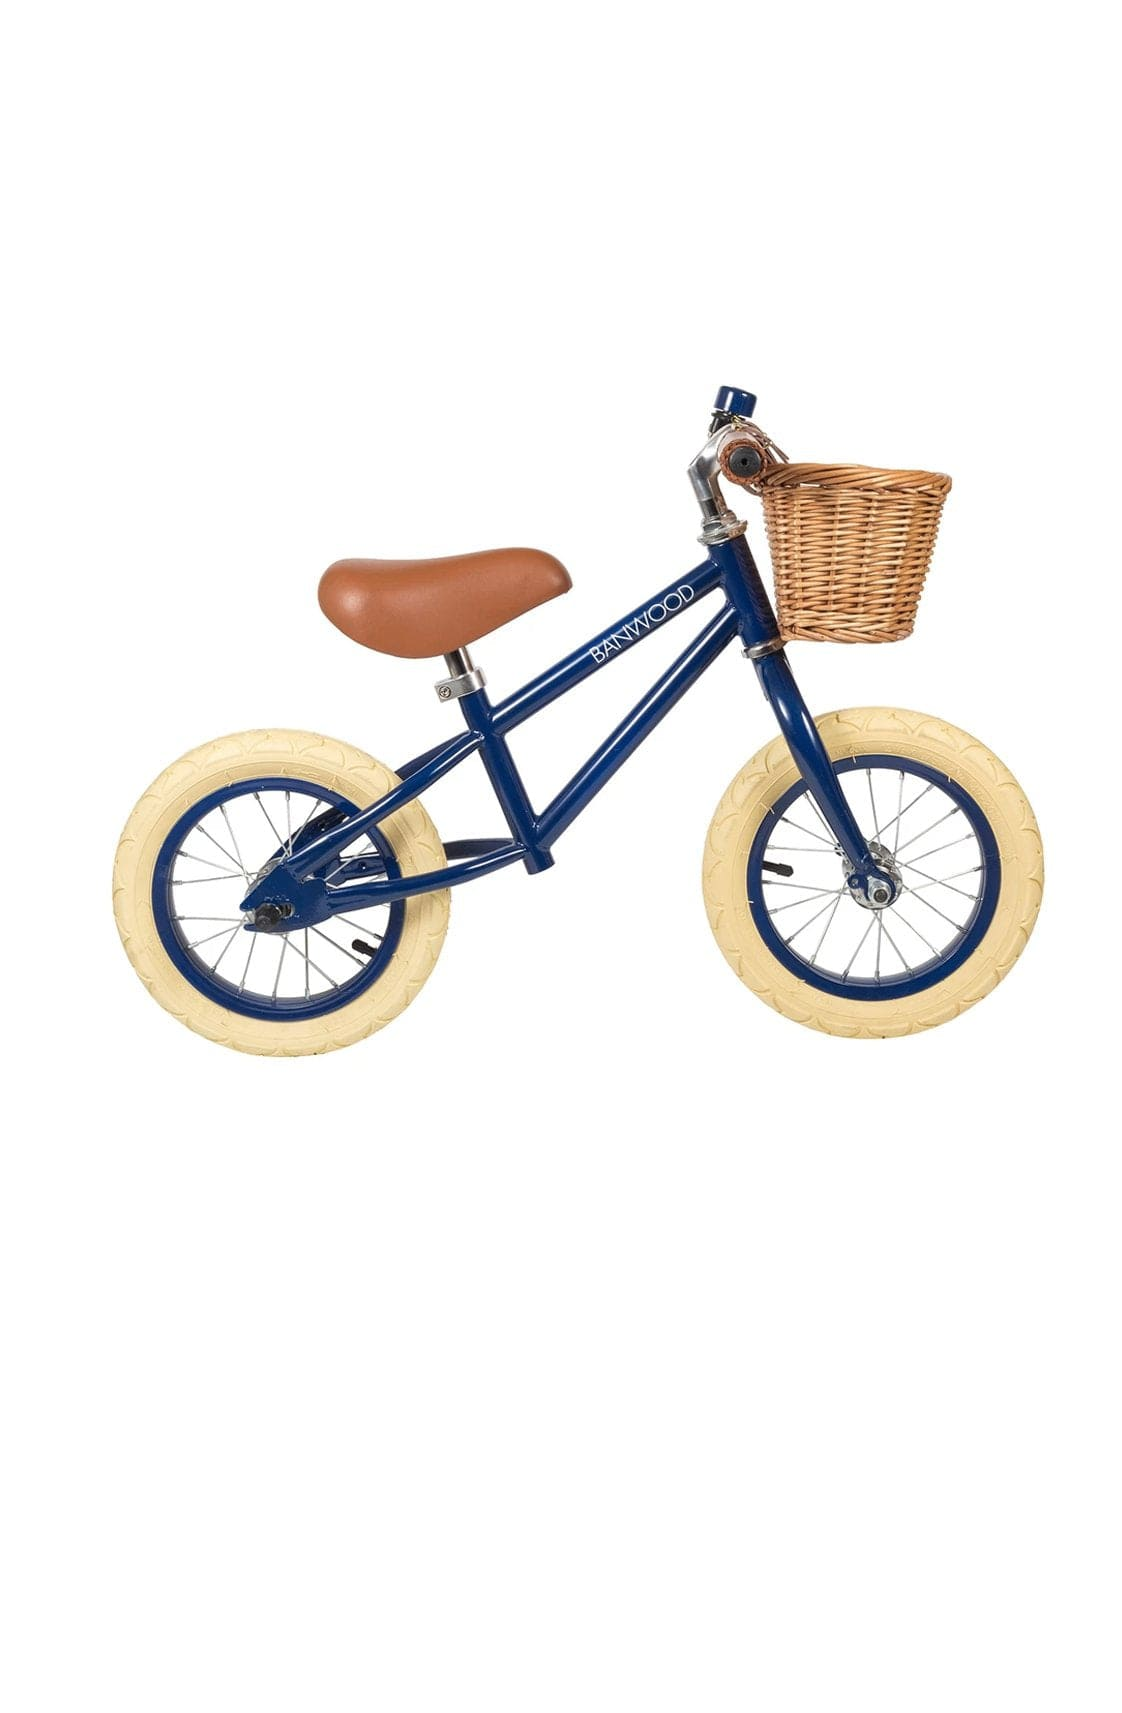 BANWOOD FIRST GO BALANCE BIKE, NAVY BLUE